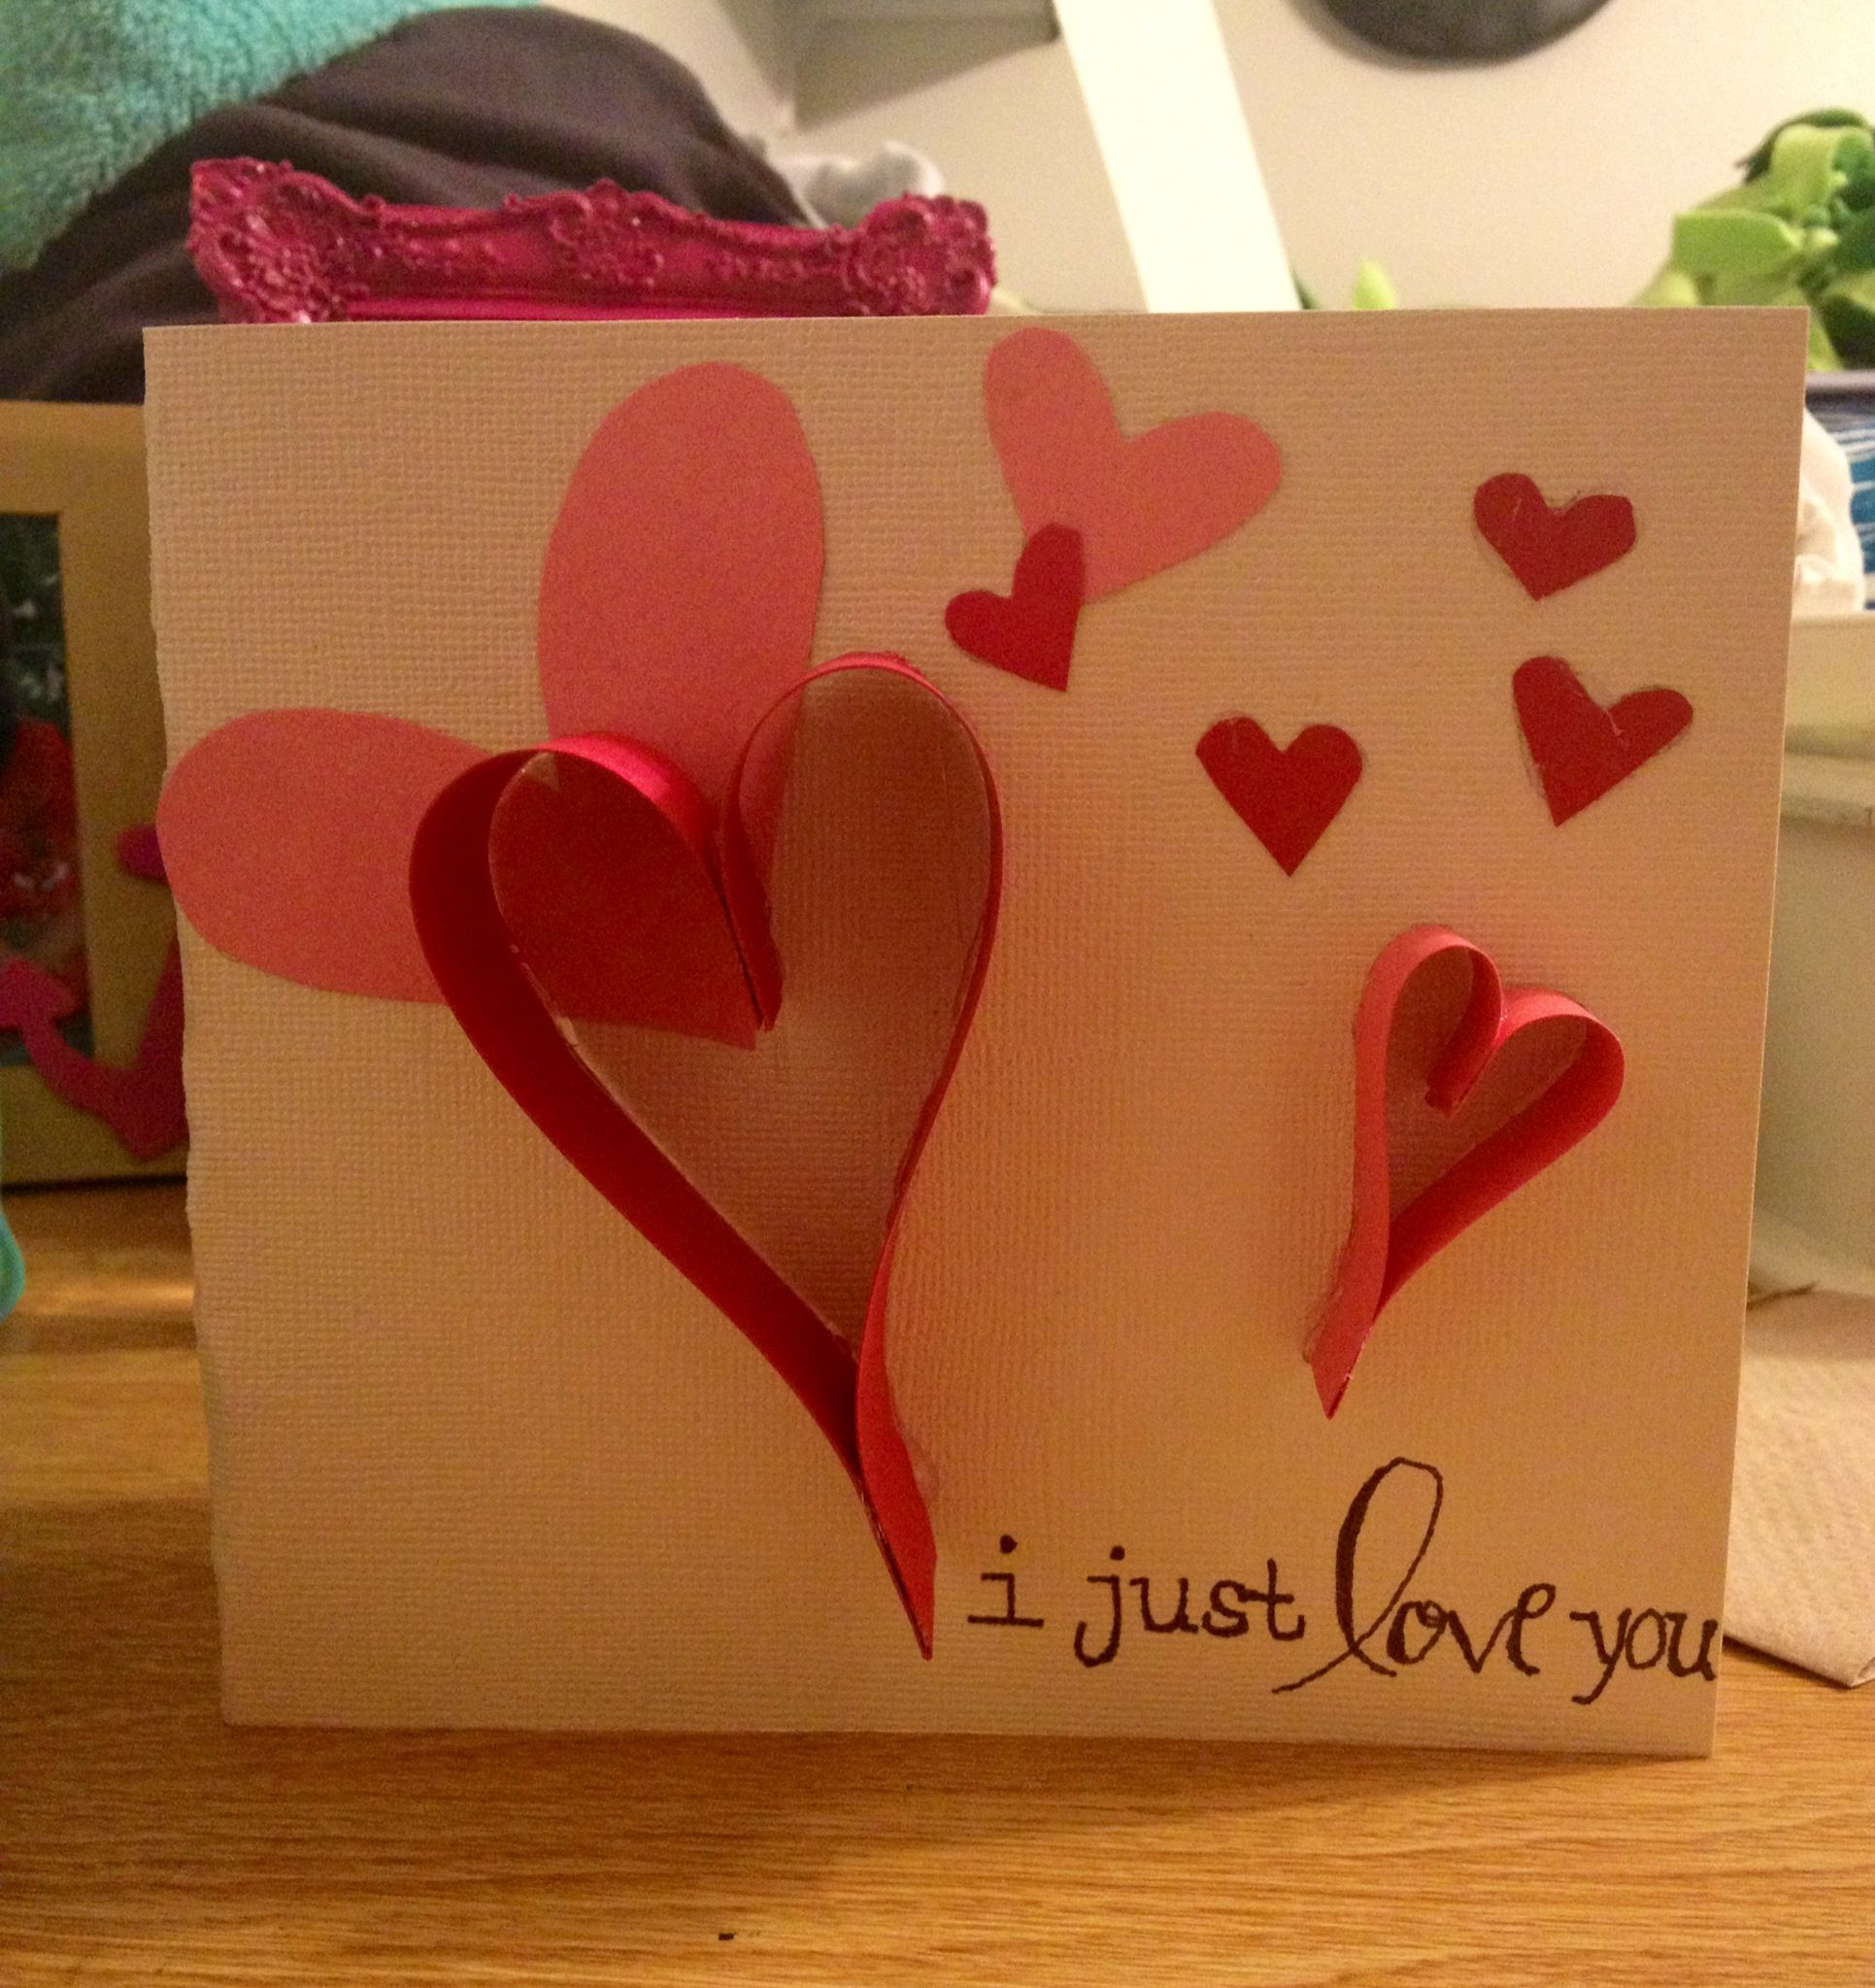 Homemade Valentines Day Card Holidays Pinterest